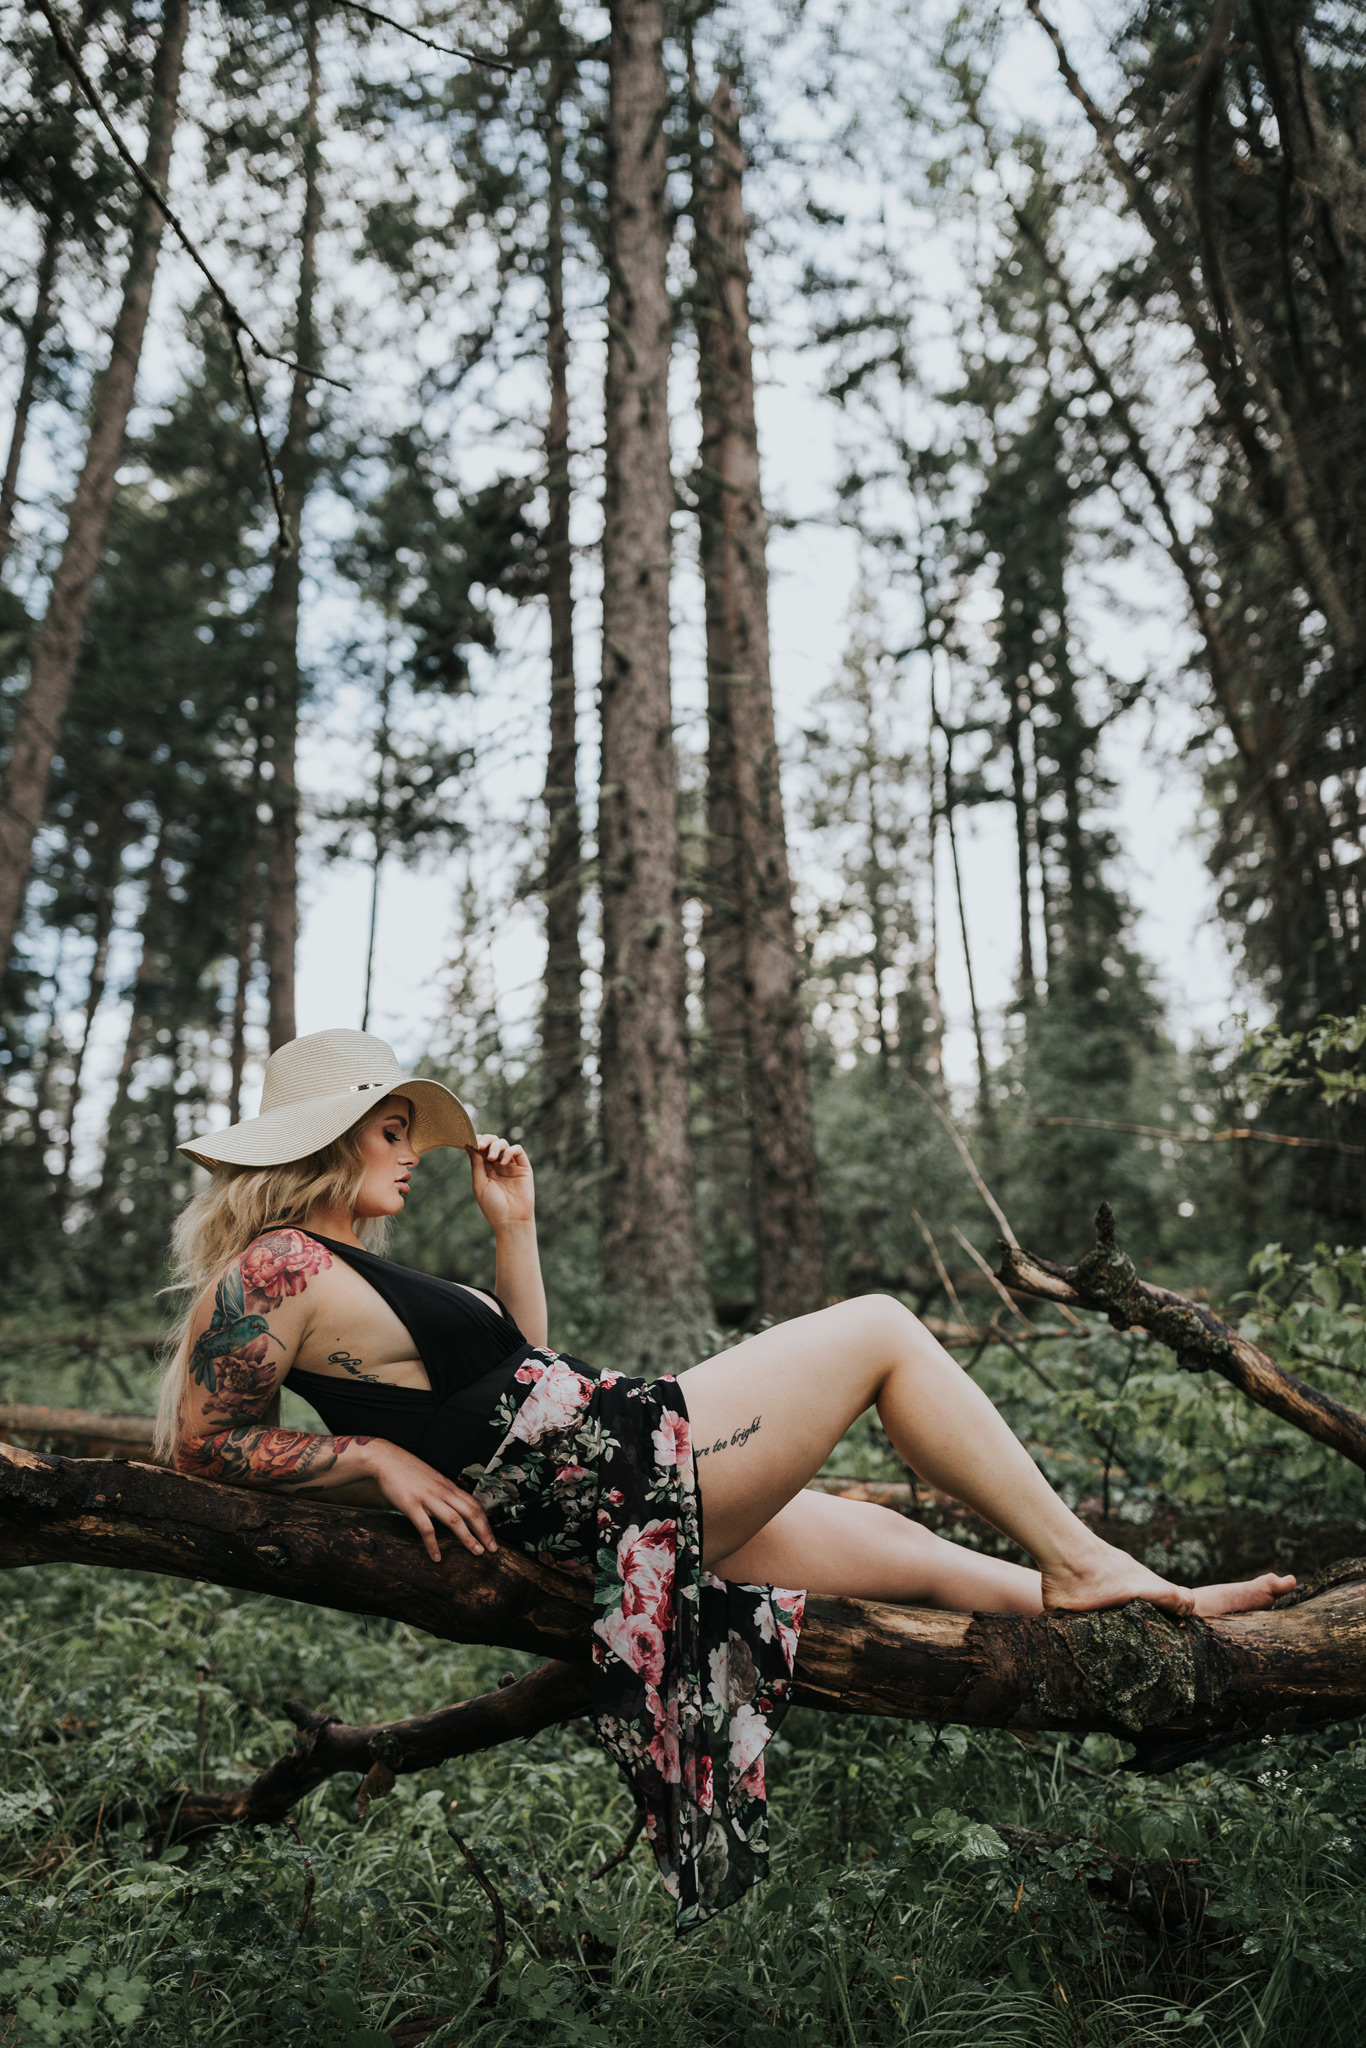 woman lounging on tree log in reesor lake forest holding brim of her hat